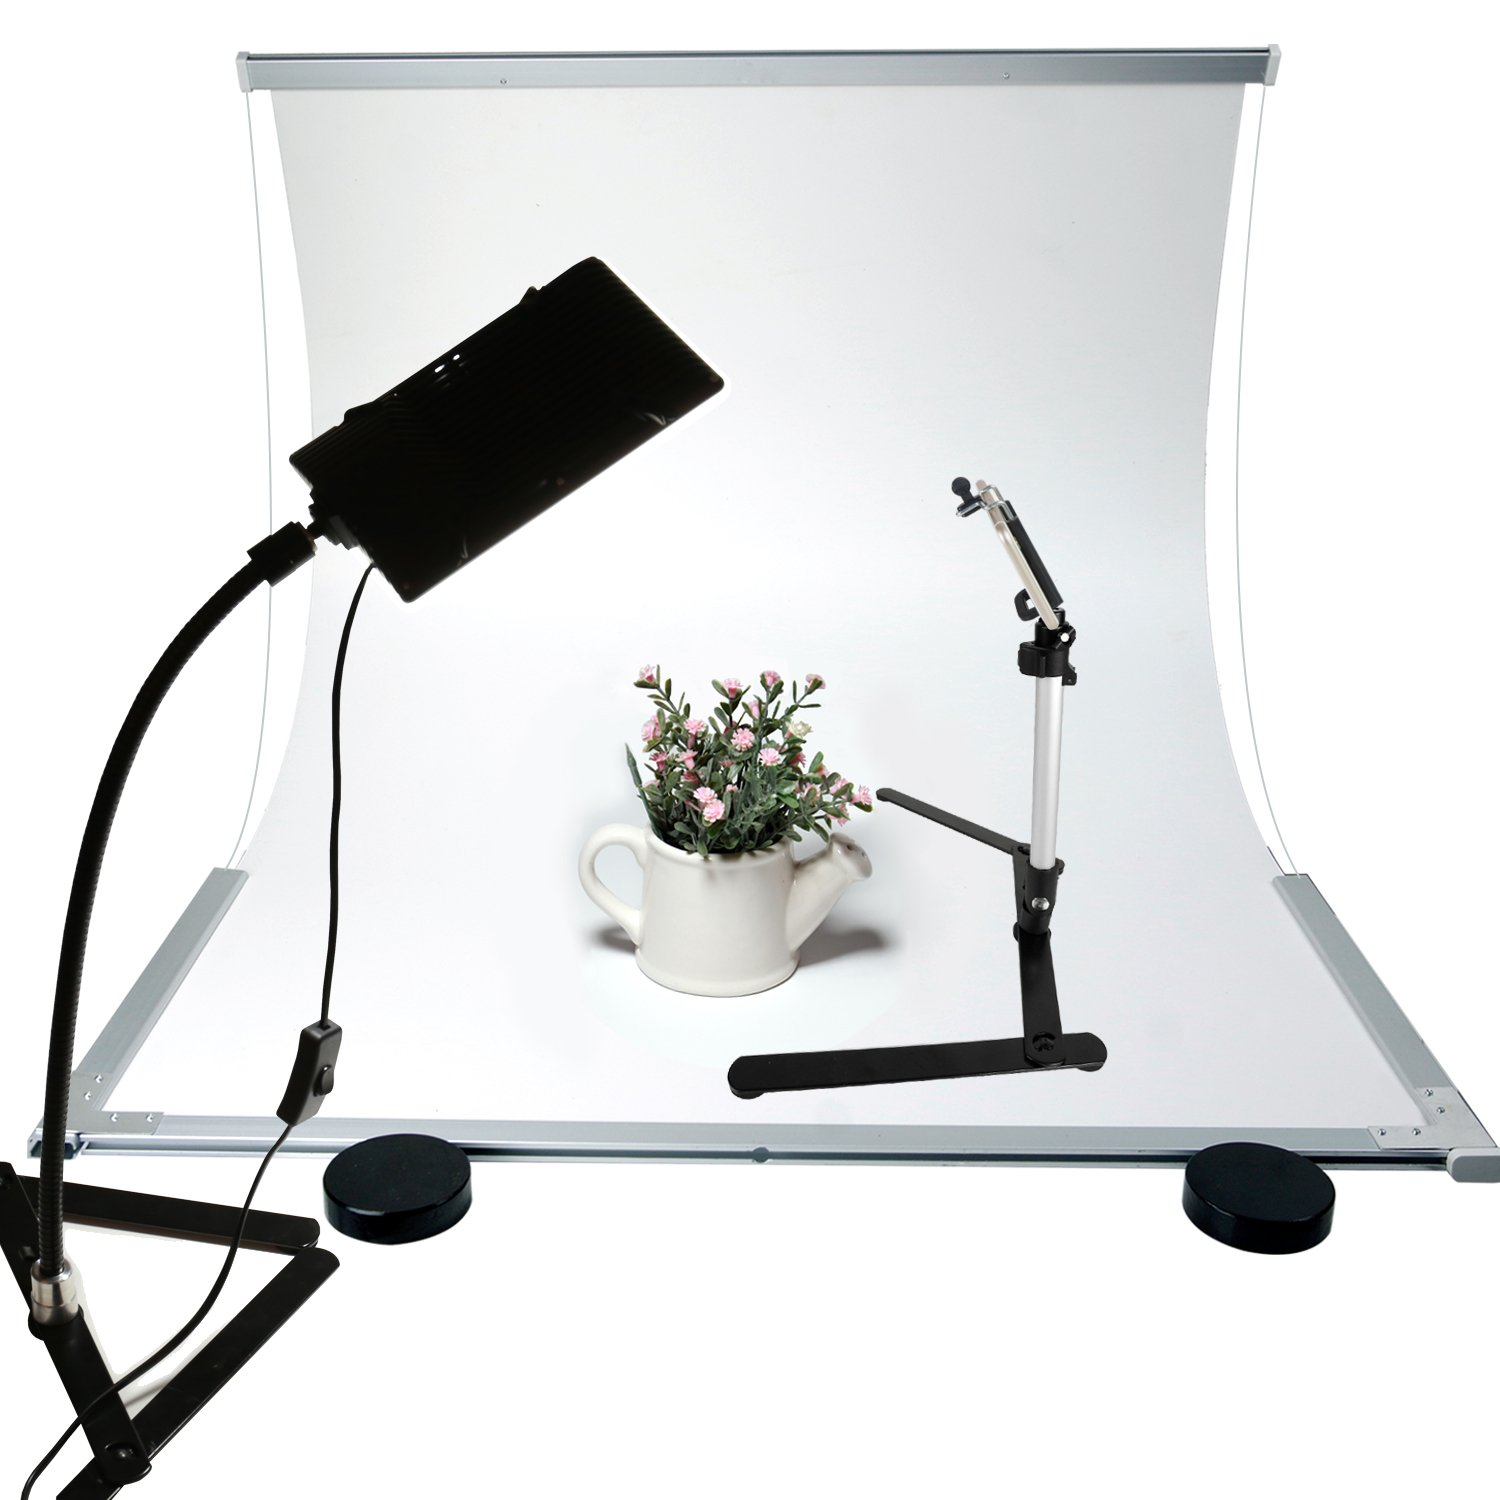 "LS Photography White Table Top Infinity Board with Gooseneck LED Table Top Light Stand Clamp, 17"" Tripod, and Cell Phone Holder Adapter for e-Commerce and Product Shooting, LGG764 by LS Photography"